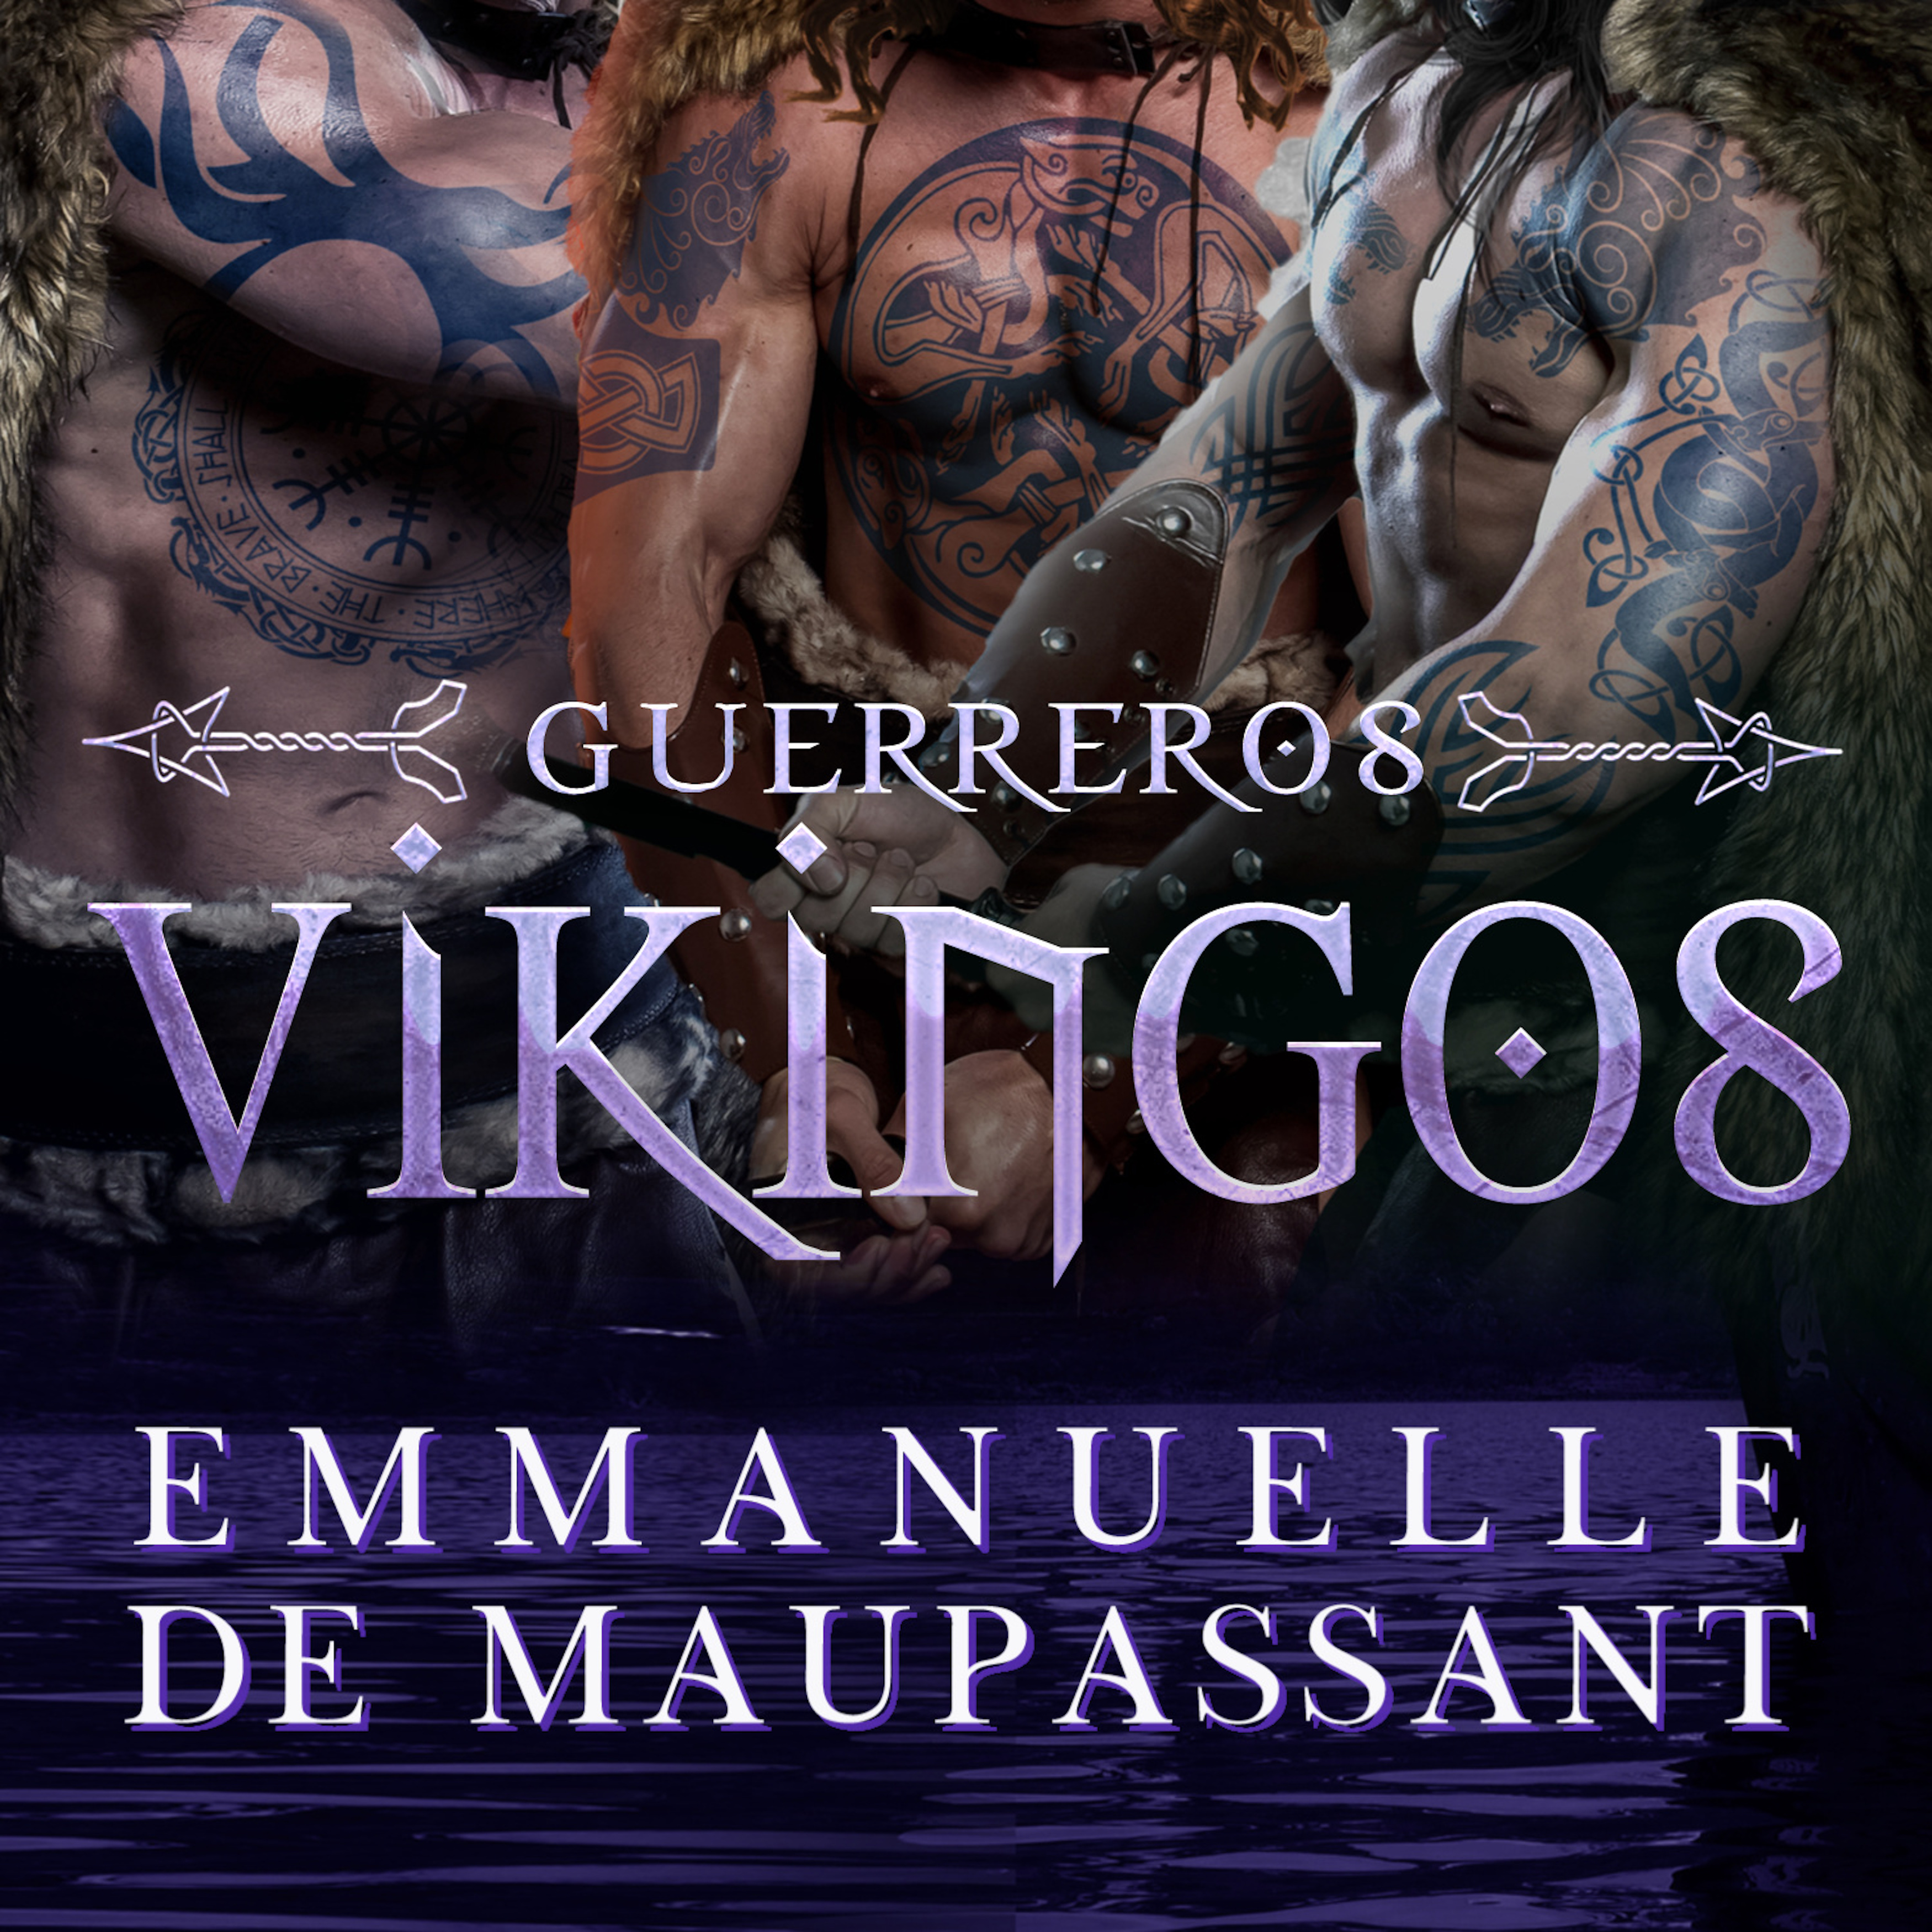 Spanish Viking Warriors trilogy audio